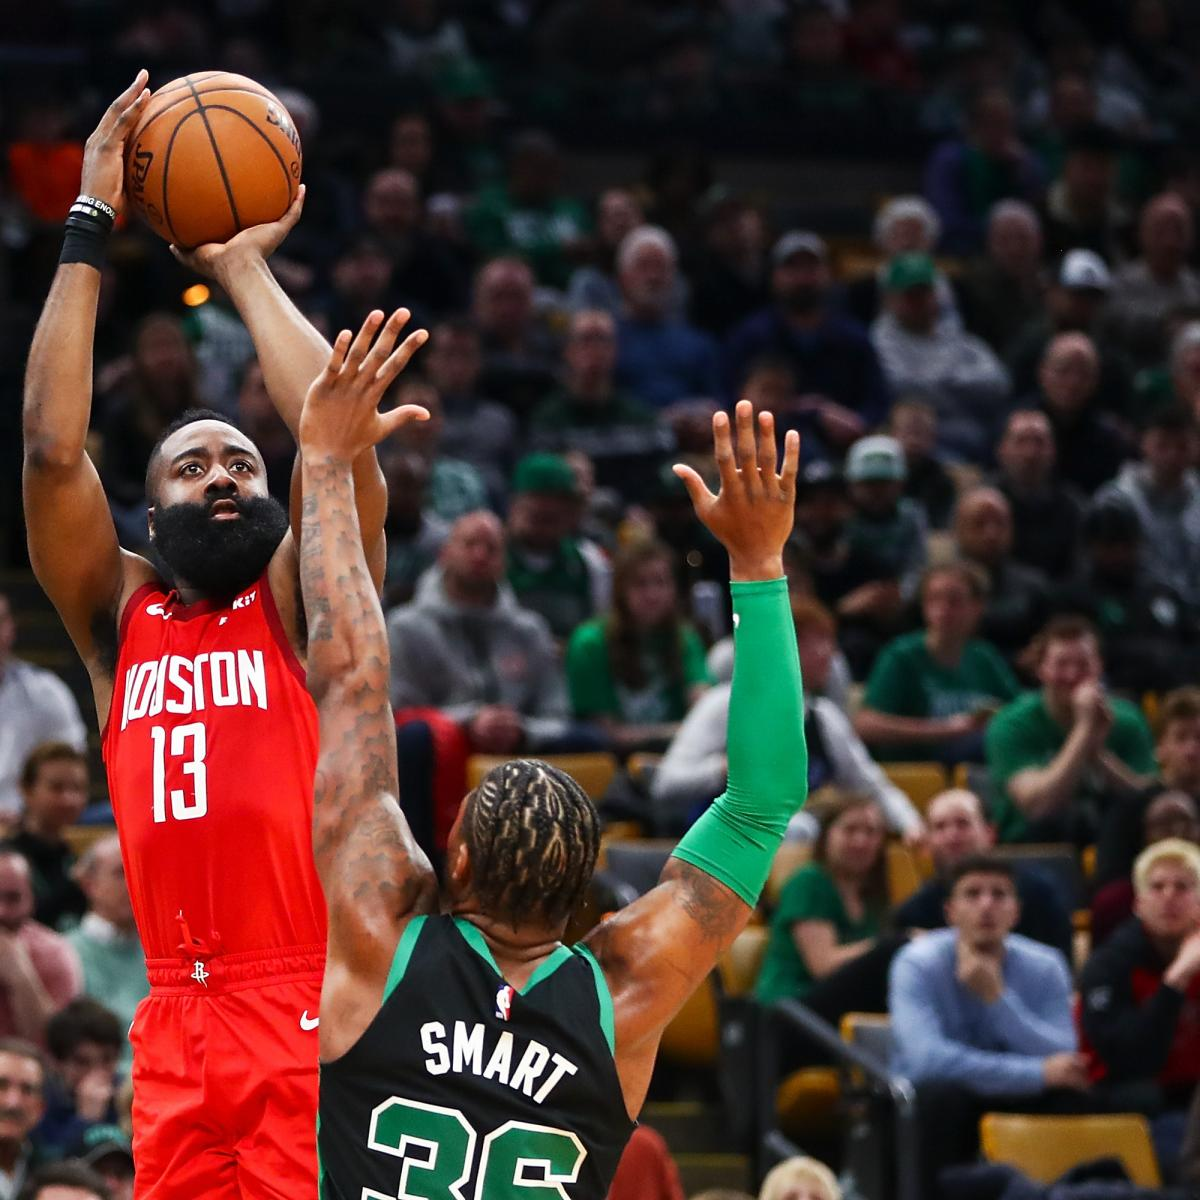 James Harden Latest News: James Harden's 42 Points Lead Rockets Past Kyrie Irving